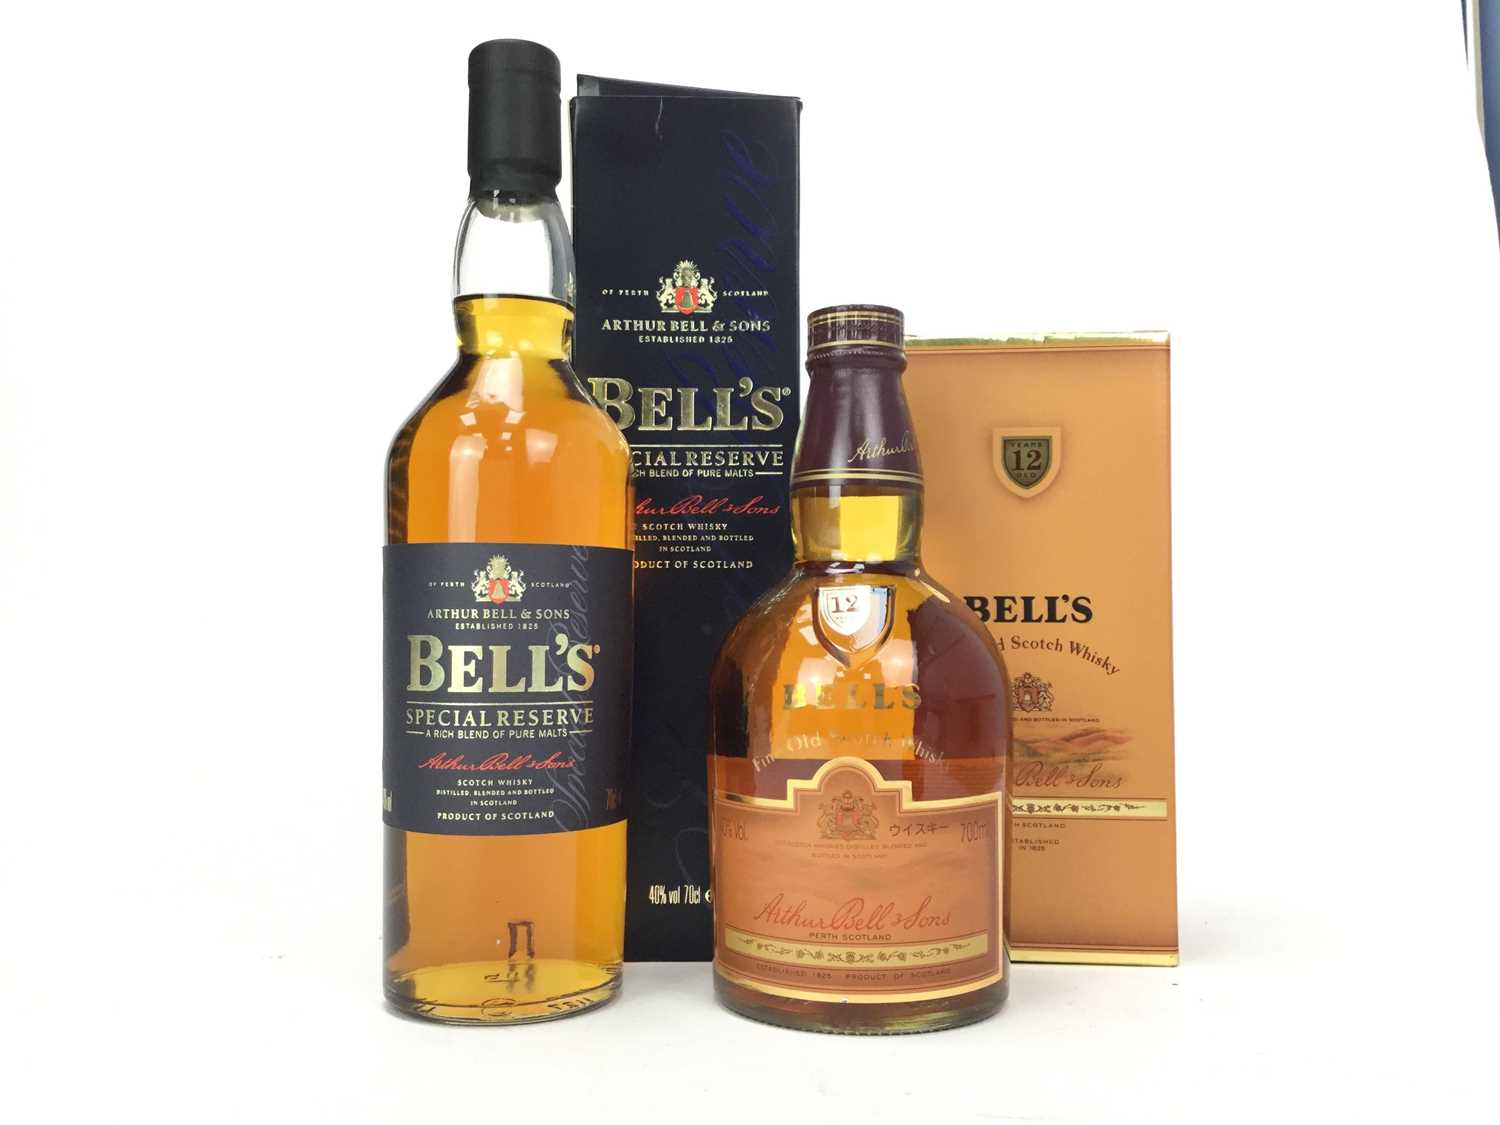 Lot 424 - BELLS SPECIAL RESERVE AND 12 YEARS OLD